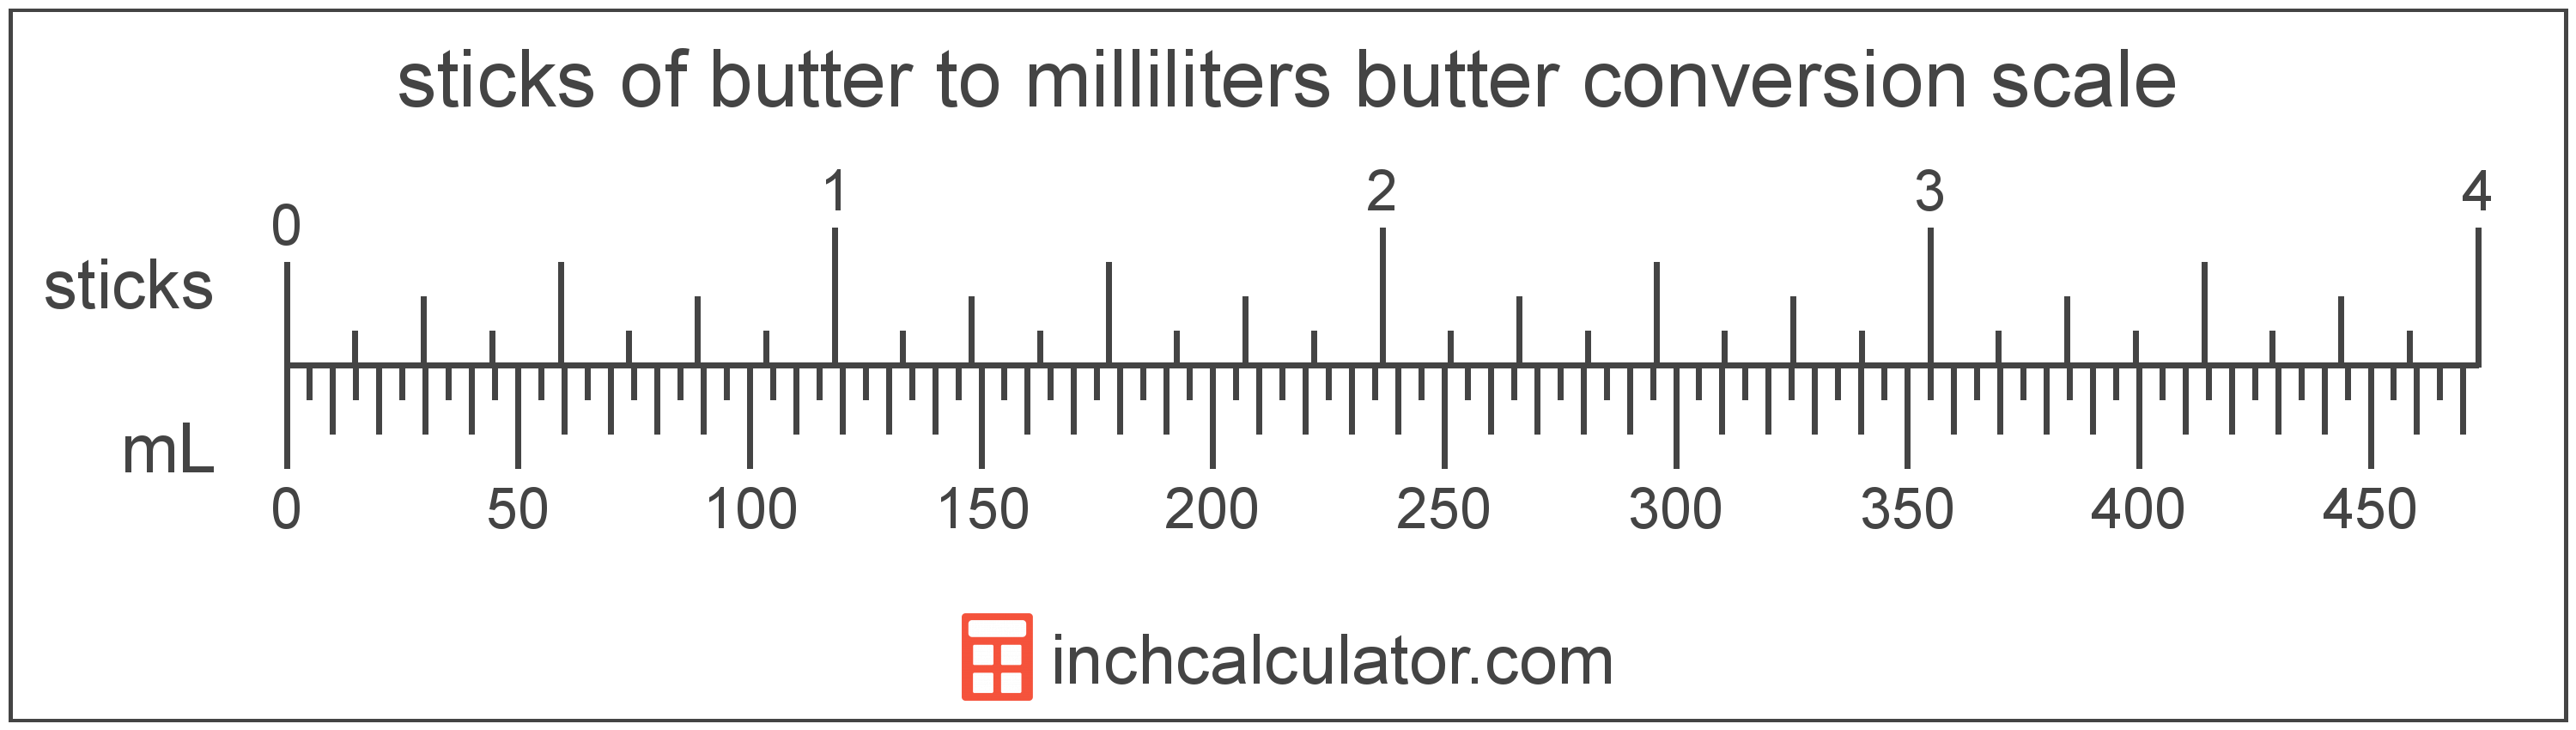 conversion scale showing sticks of butter and equivalent milliliters butter values